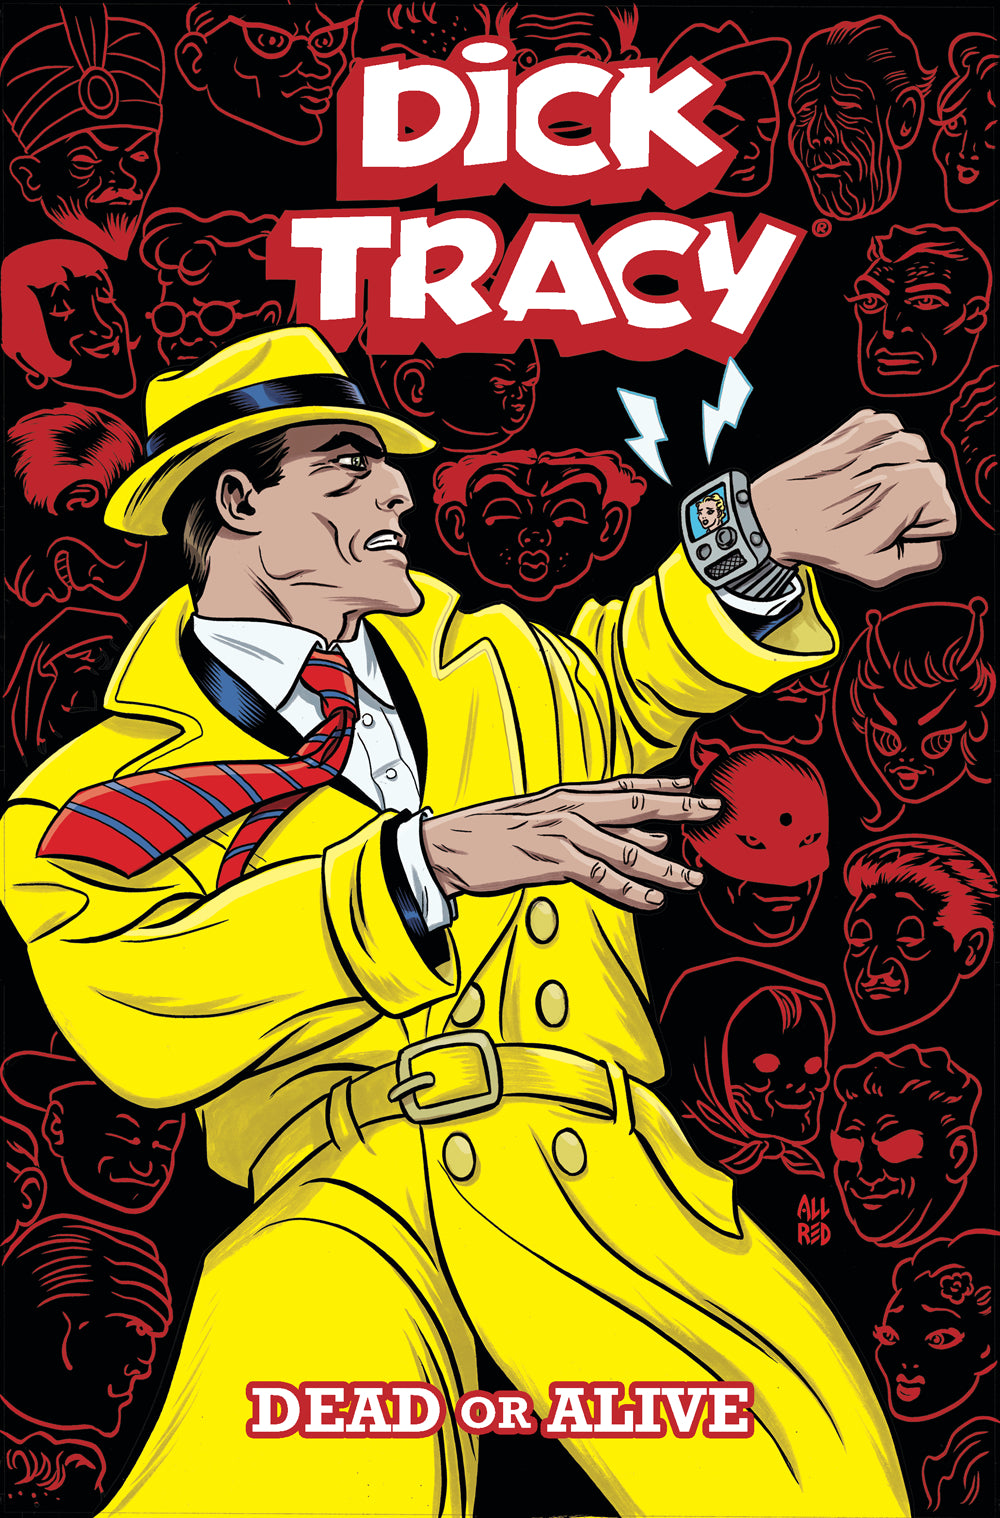 DICK TRACY DEAD OR ALIVE TP (C: 0-1-2) | Phoenix Comics and Games